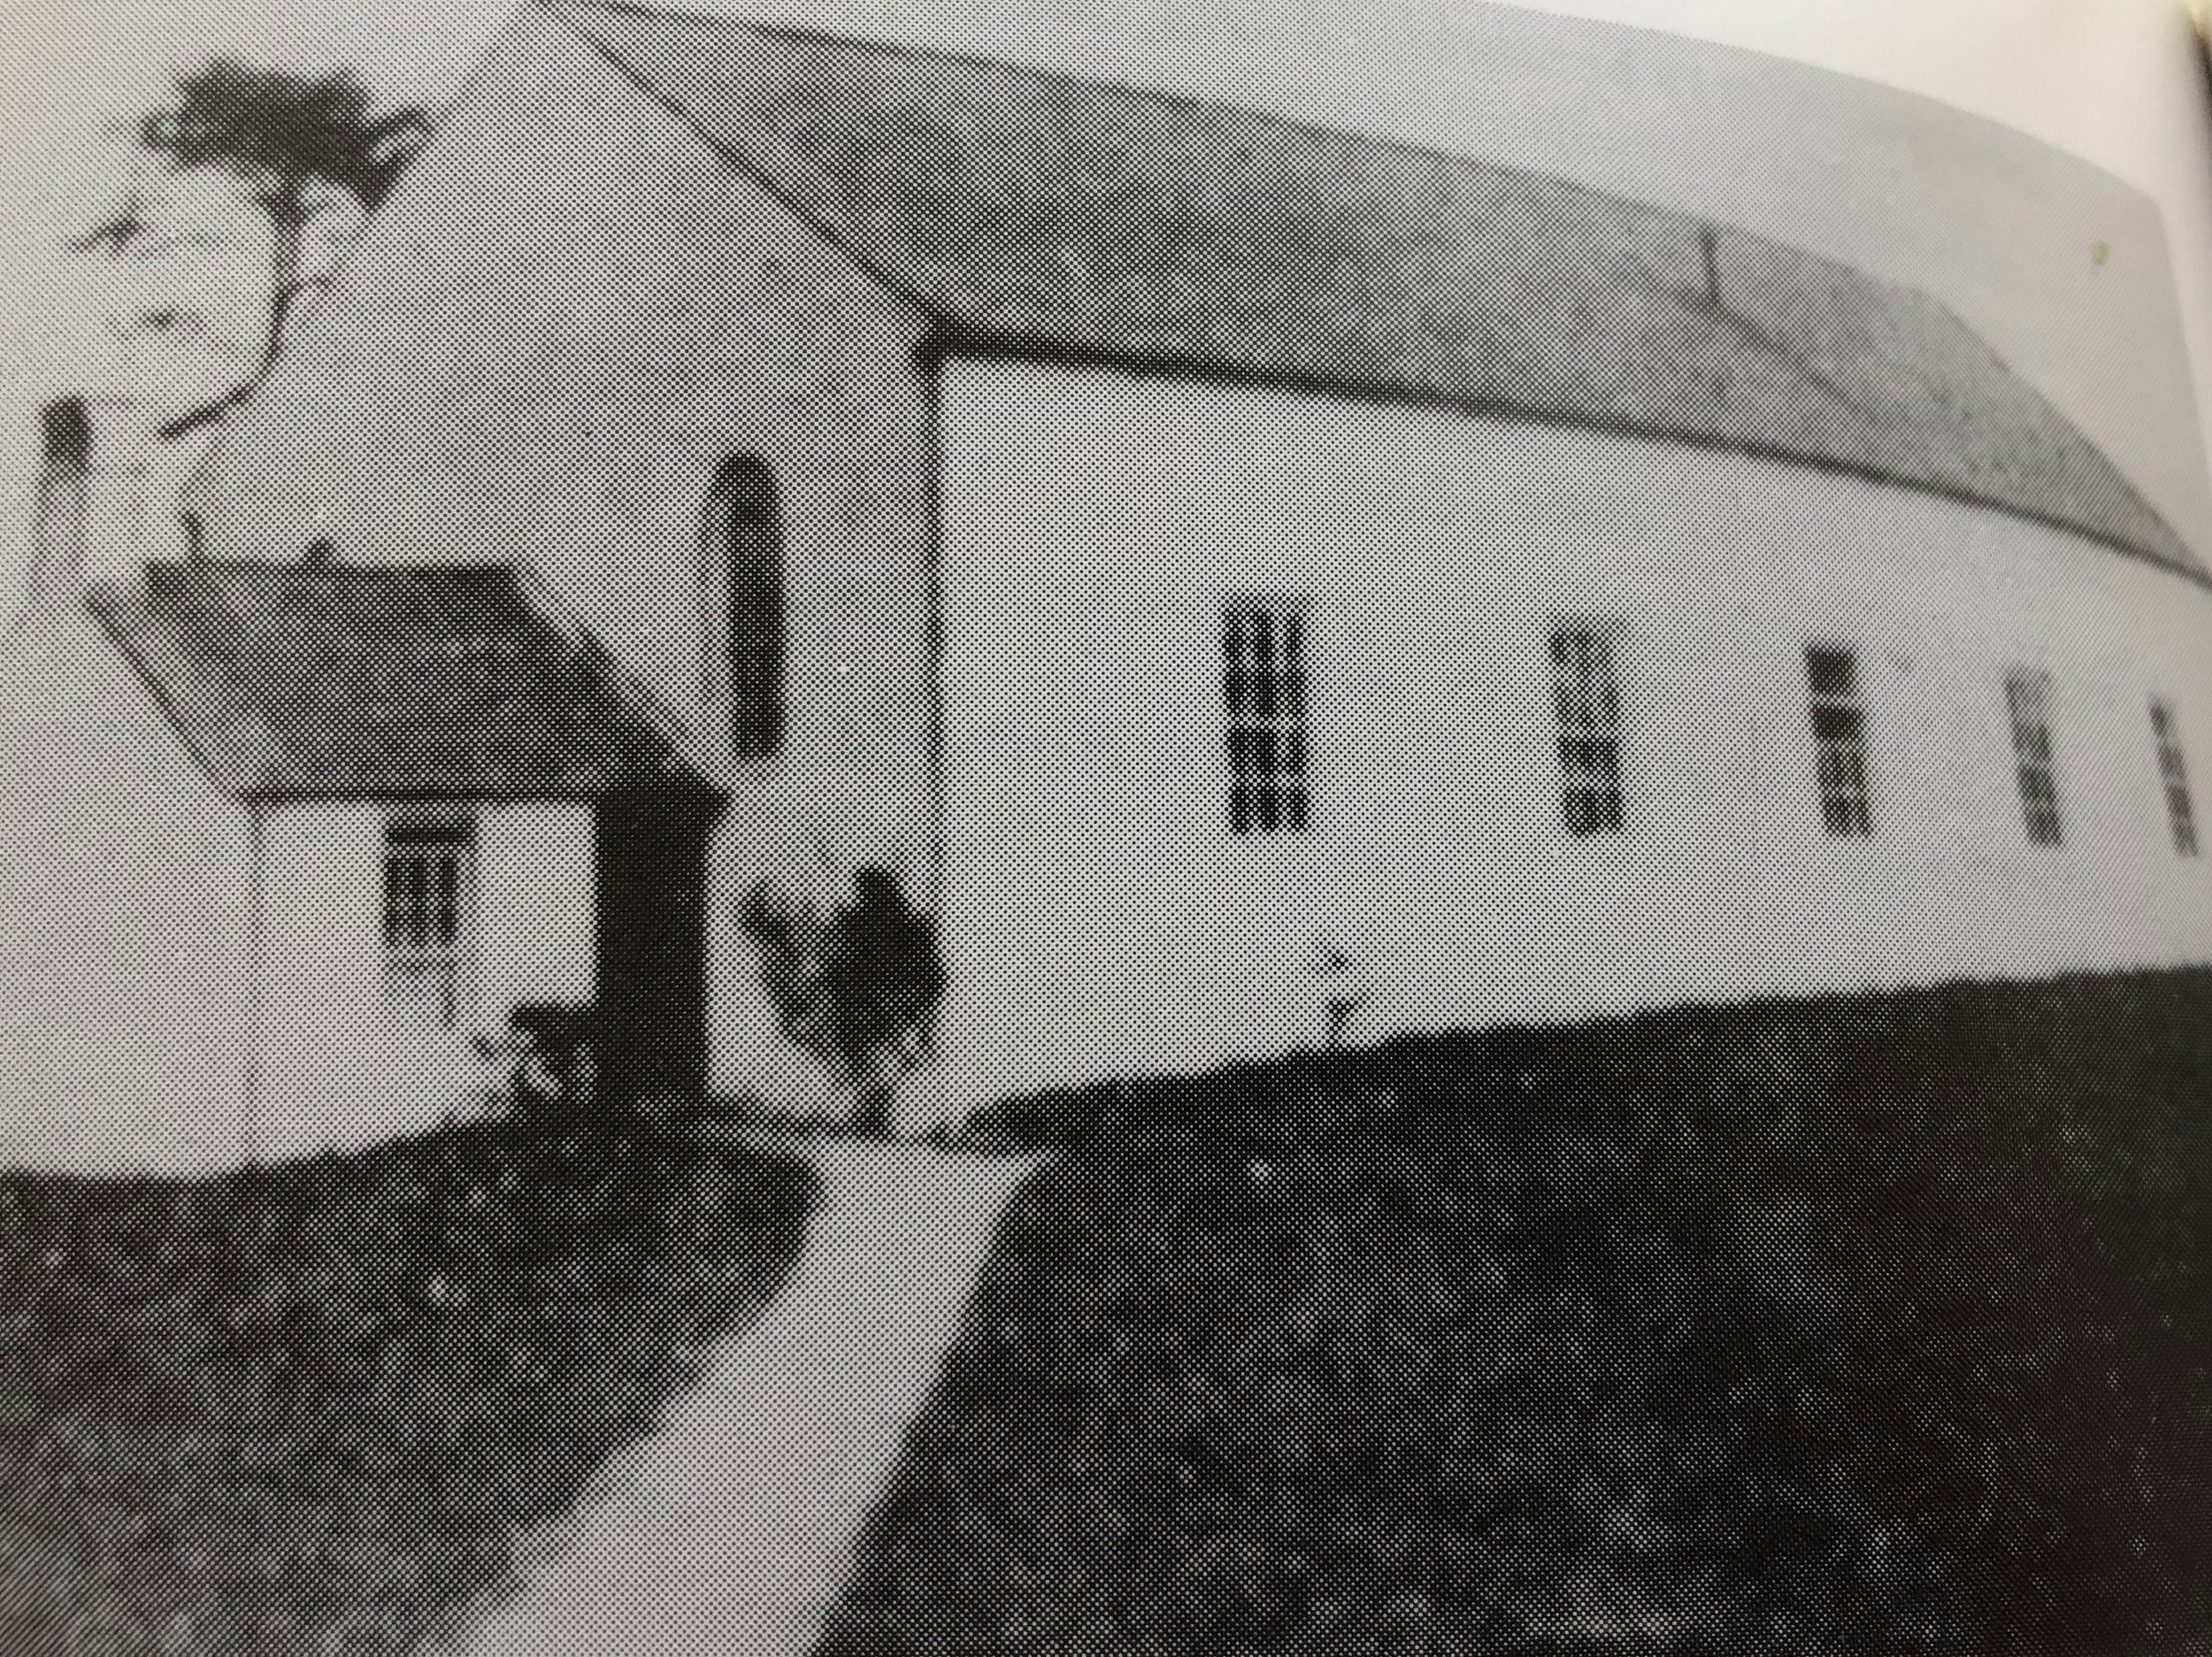 The Faughan church building as it was at the time the letter was written